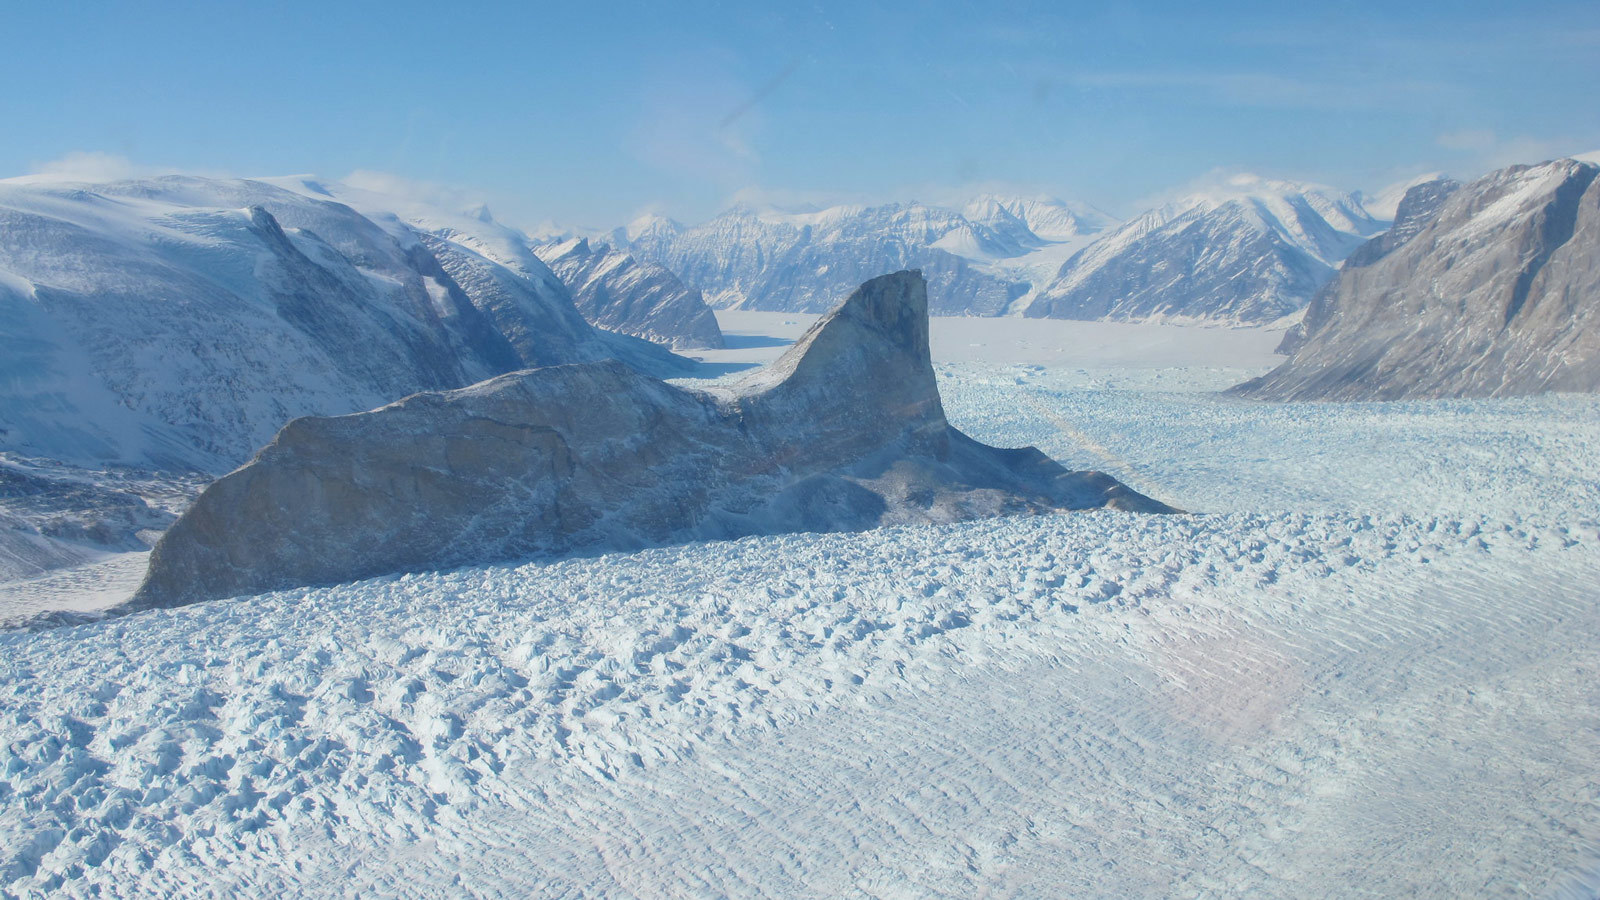 The Kangerdlugssup (pictured) and Jakobshavn glaciers in Greenland have lost roughly 14 to 20 feet (4 to 6 meters) of elevation per year over the past 16 years. Credit: NASA/Jim Yungel › Larger view